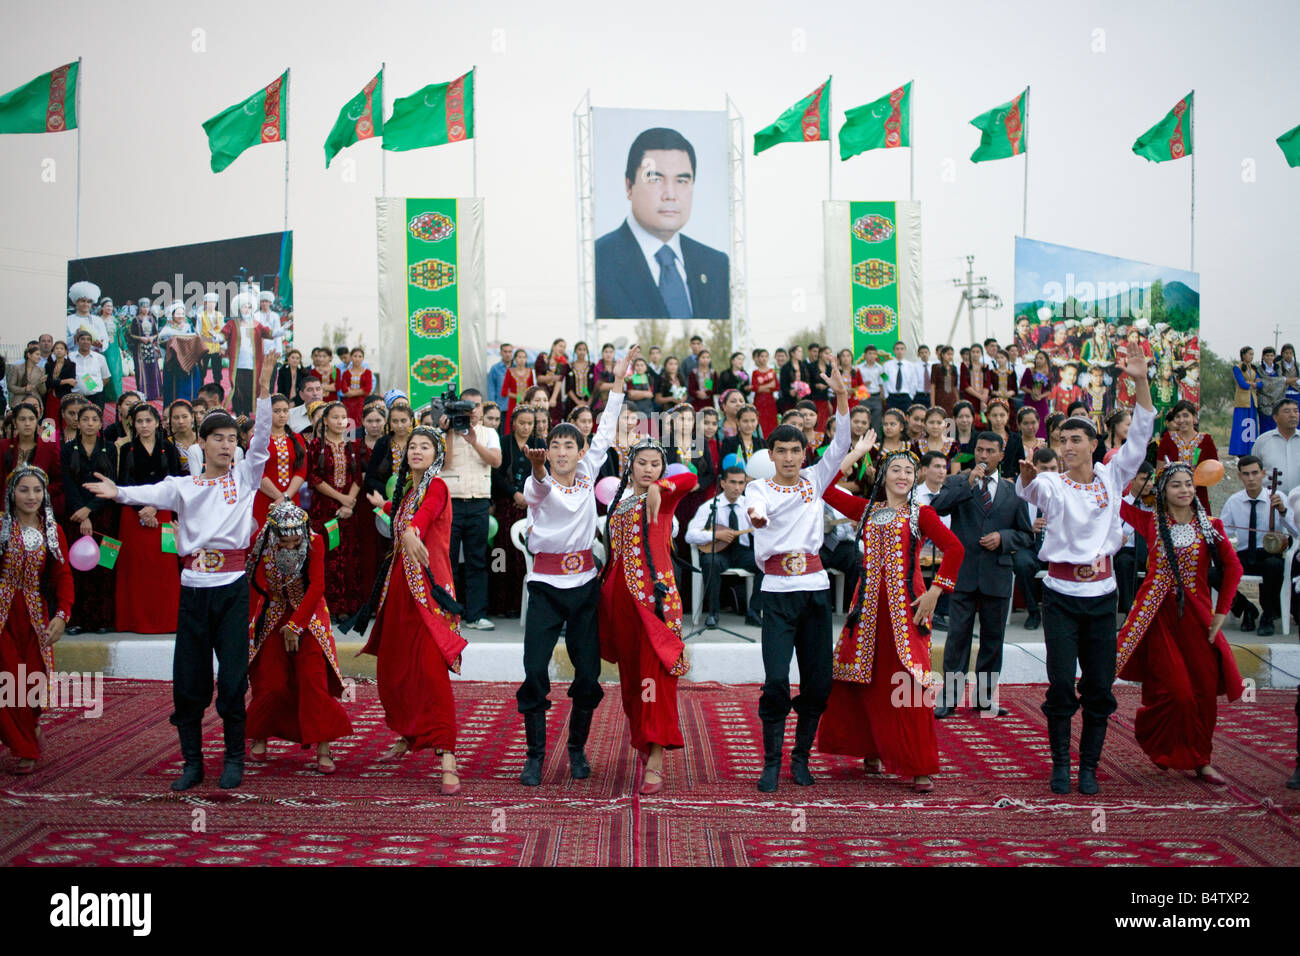 Turkmen dancers performing for delegates at an international conference beside the road on the outskirts of Ashgabat - Stock Image